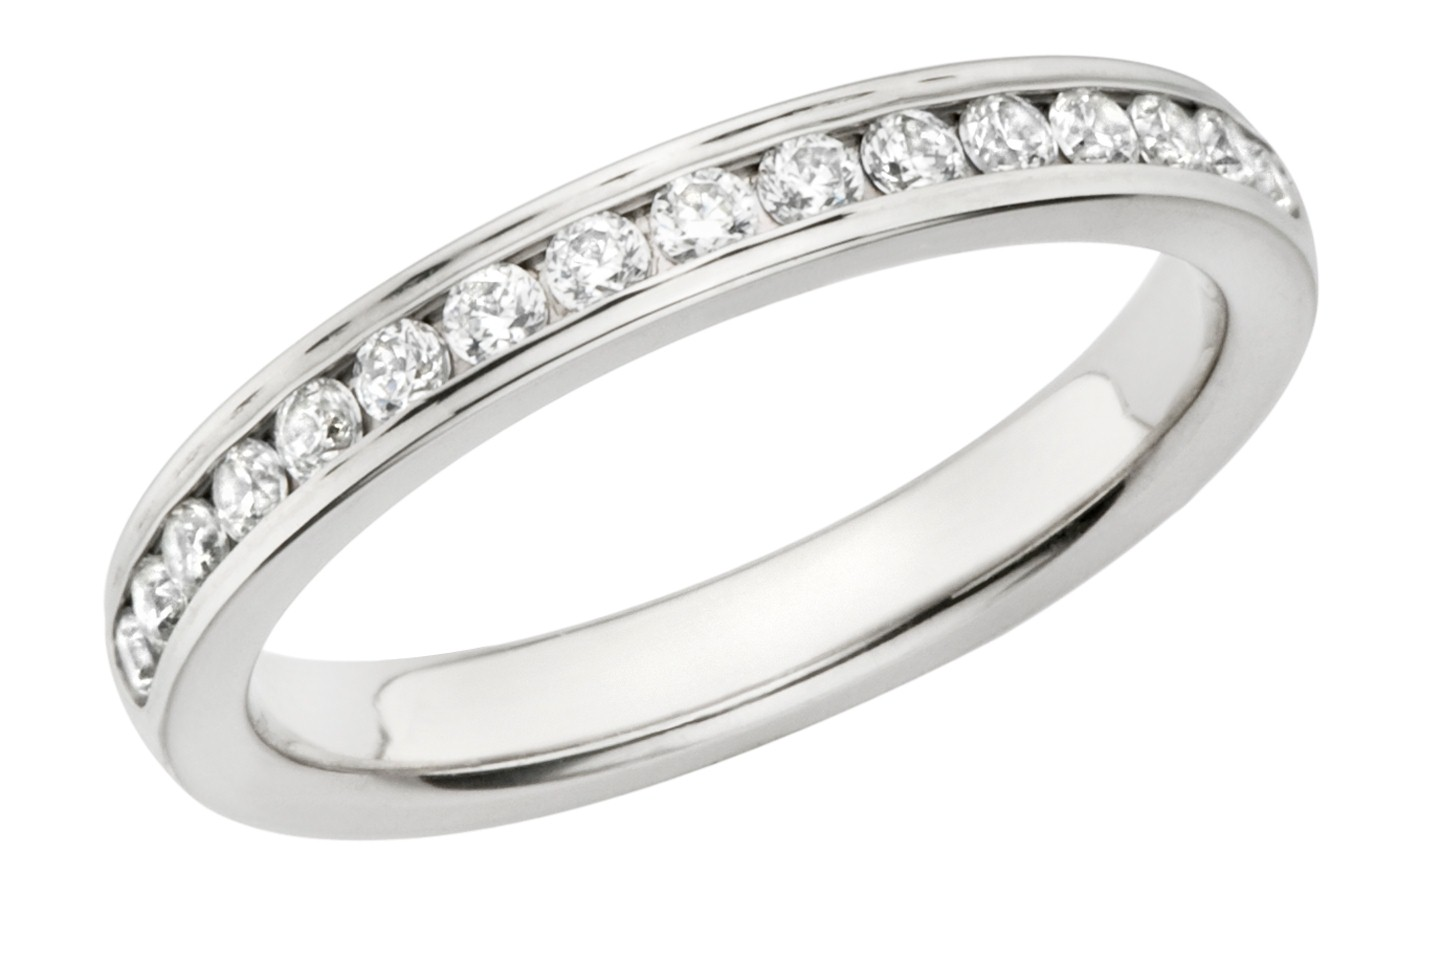 Lady's Diamond Wedding Band 12 Diamonds .24 Carat T.W. 14K White Gold 2.4g